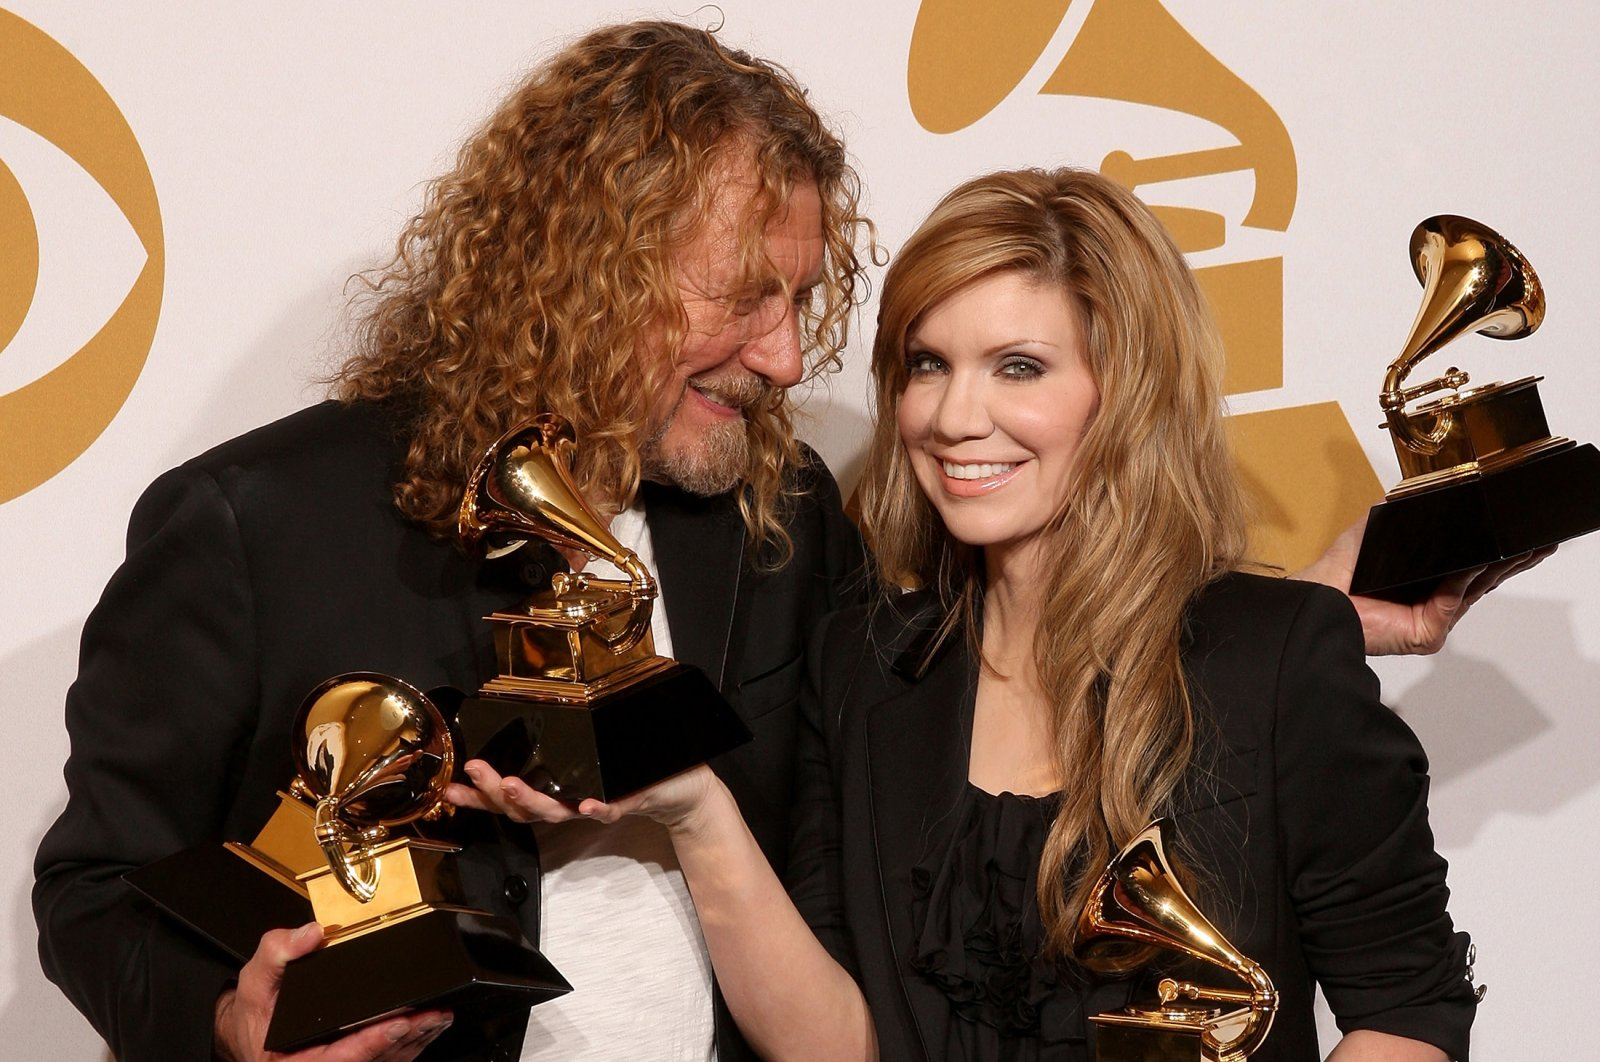 Musician Robert Plant (L) and singer Alison Krauss pose in the press room during the 51st Annual Grammy Awards held at the Staples Center on February 8, 2009, Los Angeles, California, U.S.  (Getty Images)